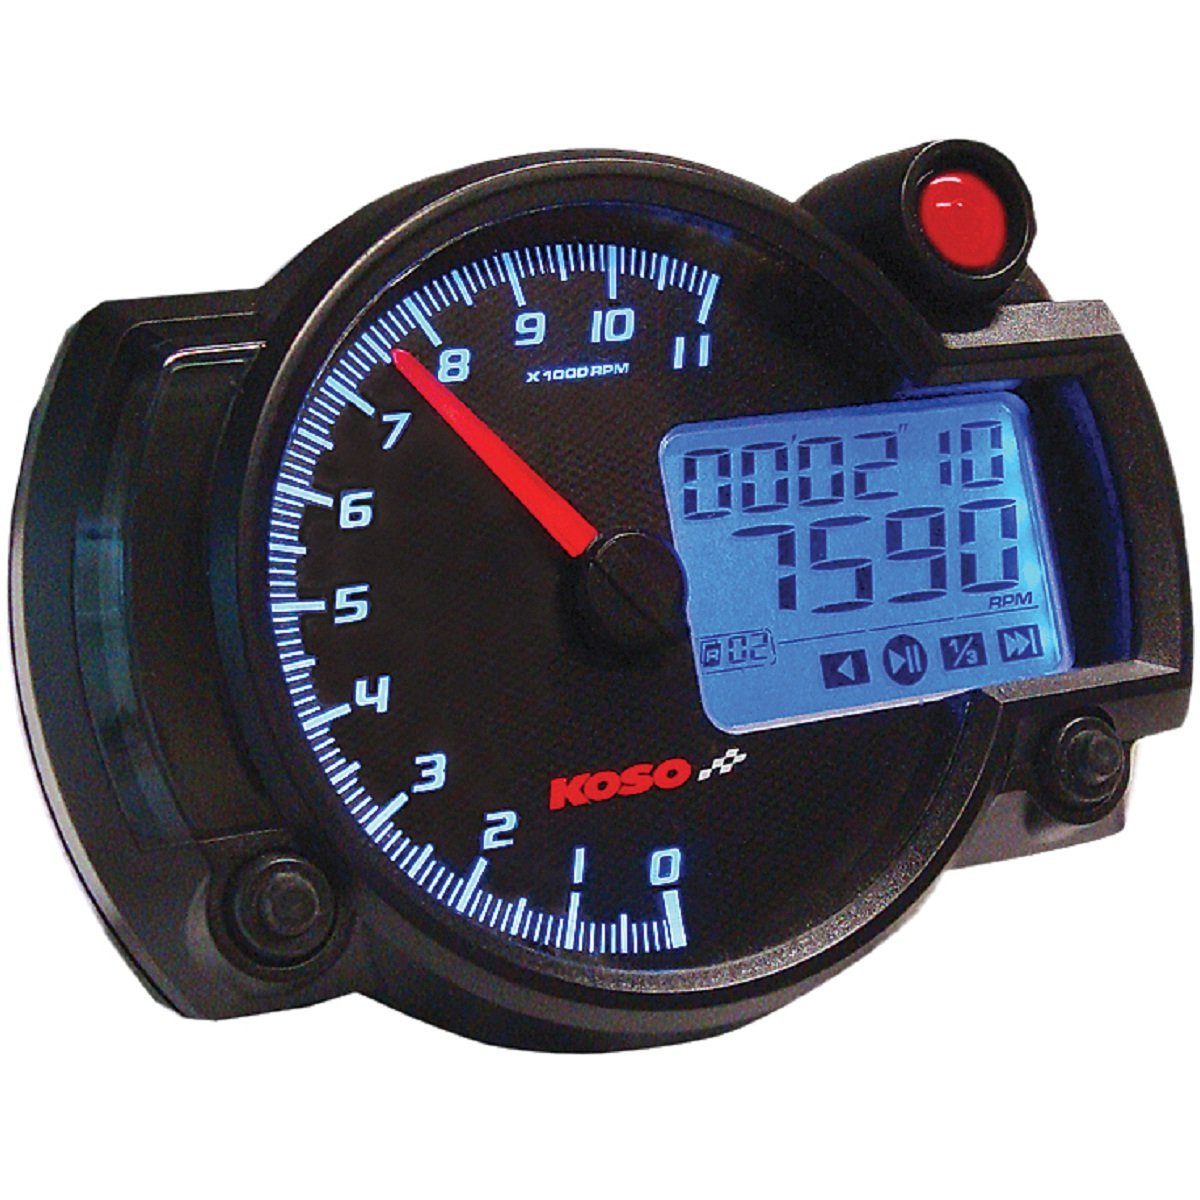 Koso RX-2NS RPM Data Logger - One Size